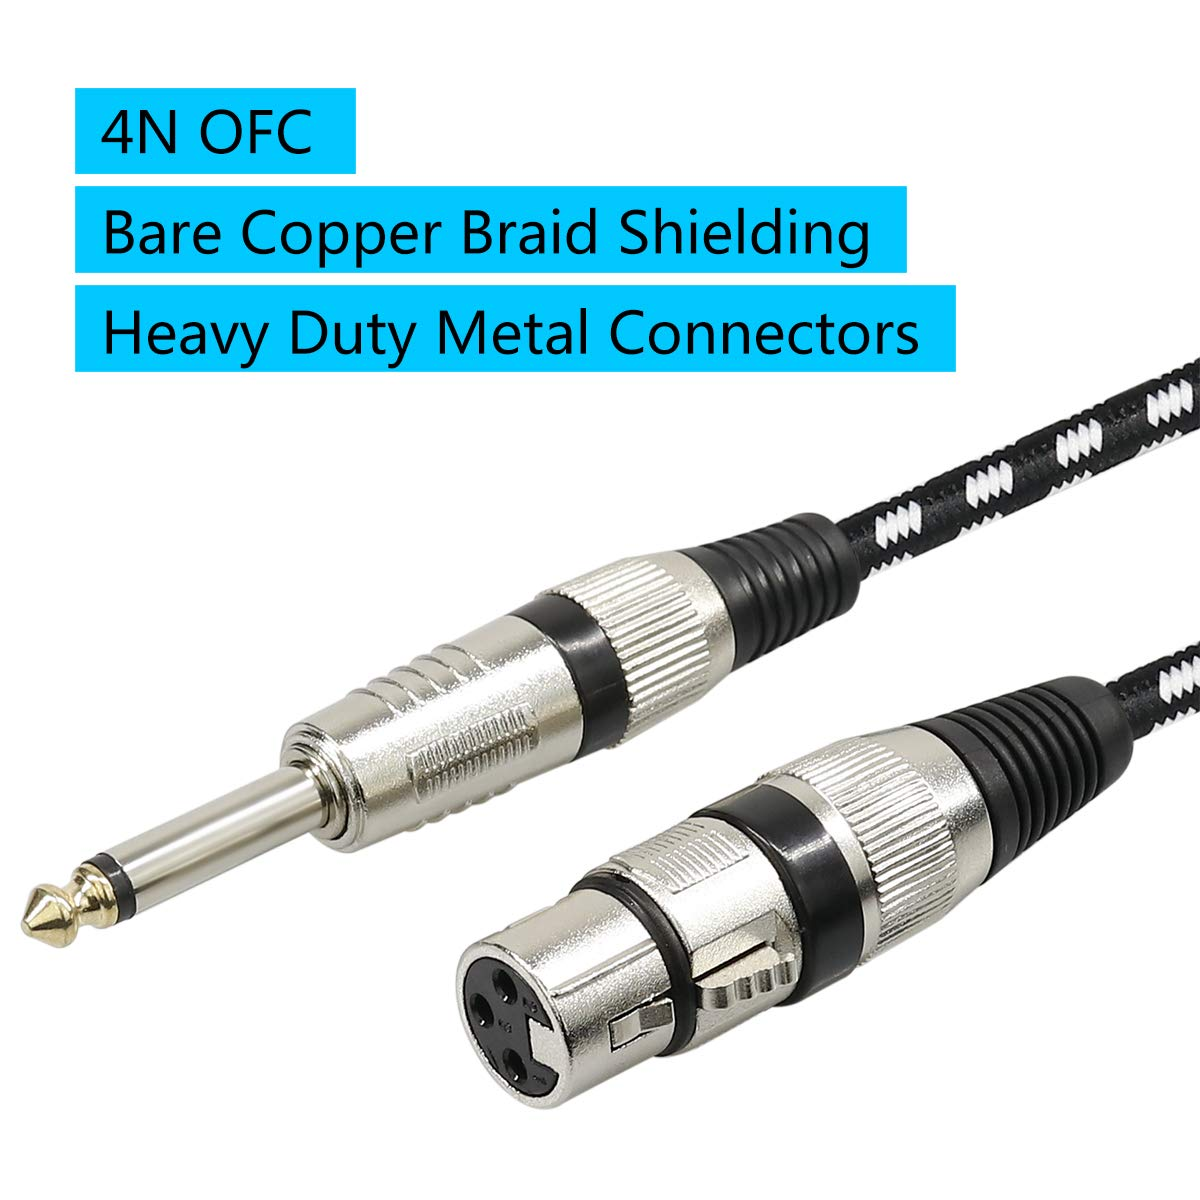 Microphone Cable XLR Female to 1/4'' TS Cables,Furui Nylon Braided 6.35mm (1/4 Inch) TS to XLR Cable (XLR Female to TS Male Unbalanced Cable) Gold-Plated Connectors - 25 Feet